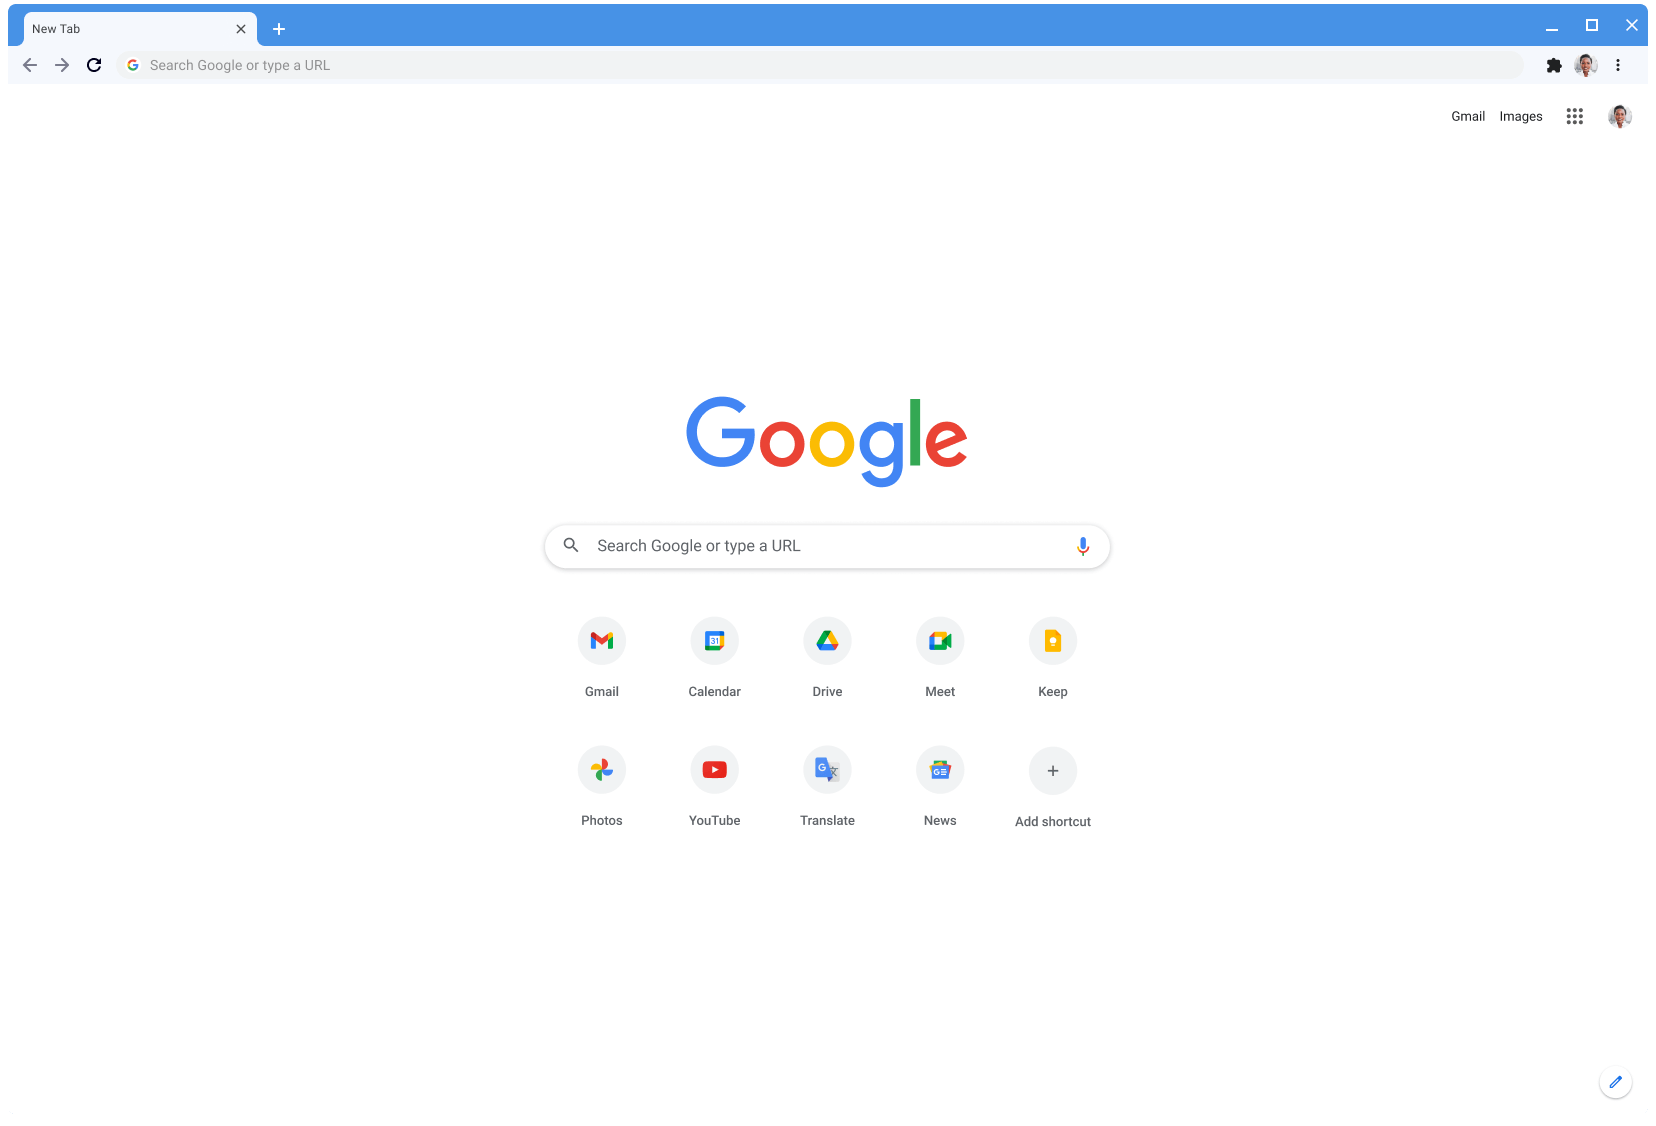 Chrome browser window displaying Google.com, using the Classic theme.